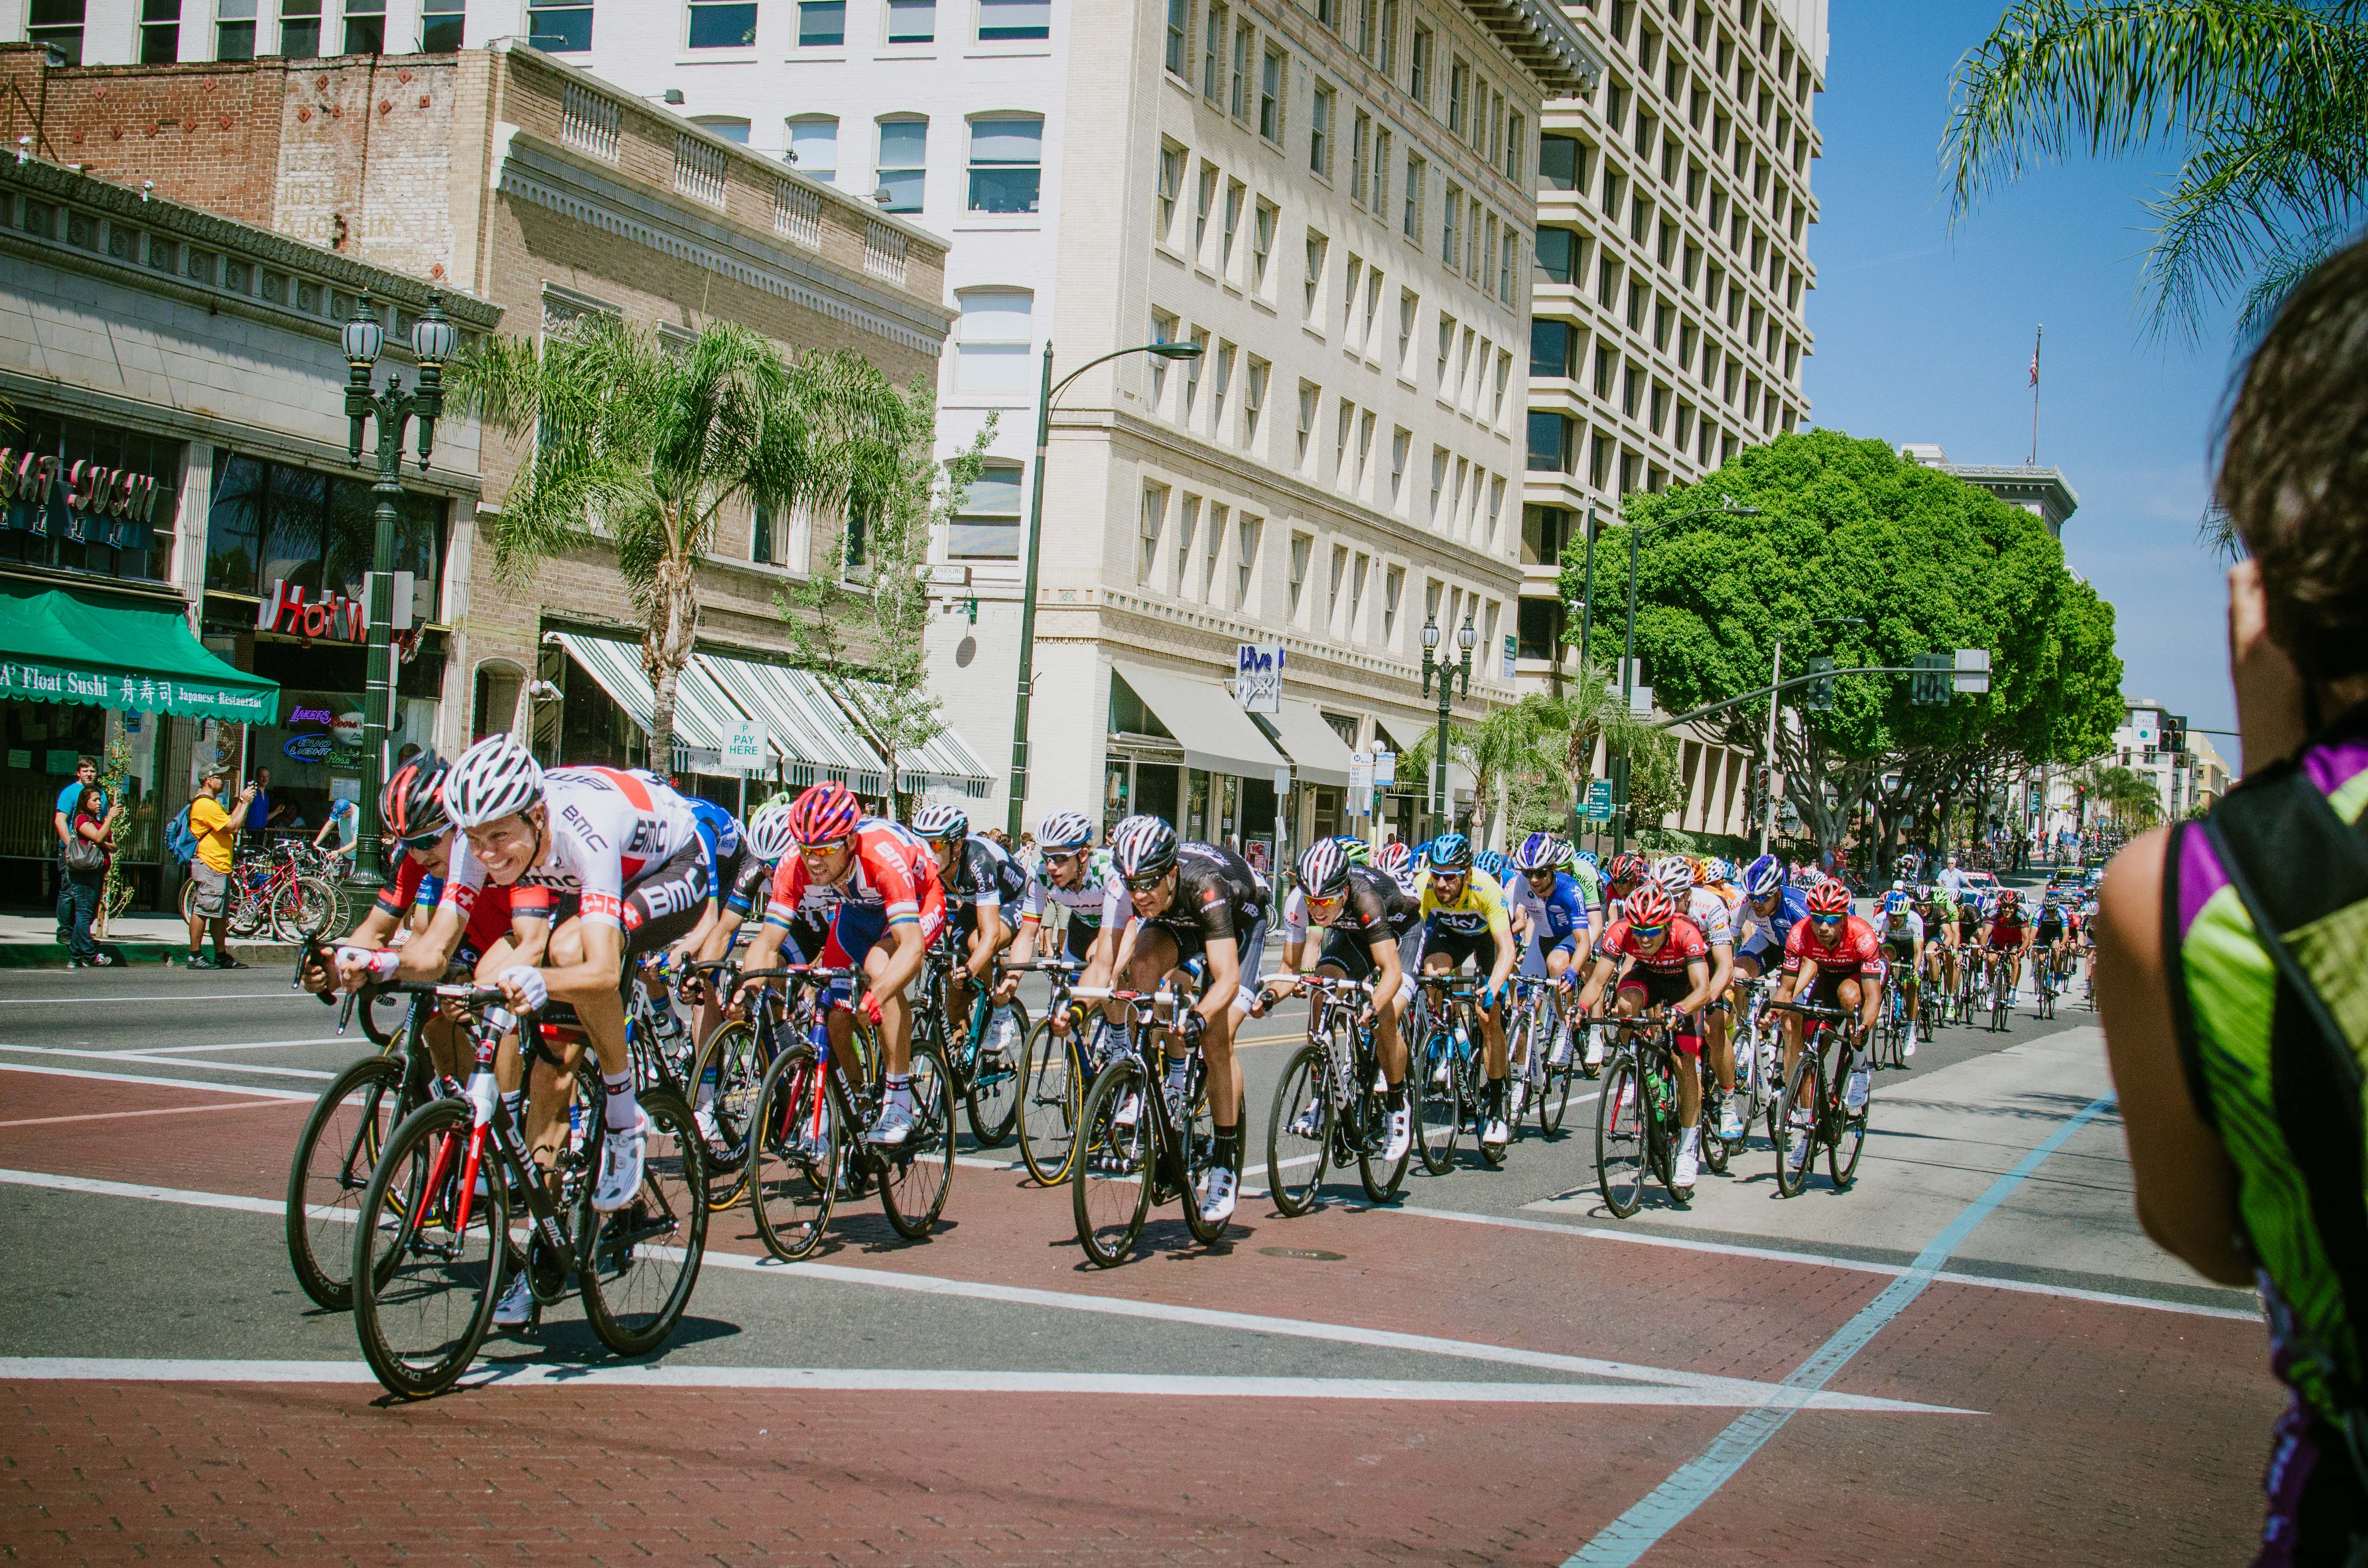 ART OF TRANSIT: The peloton makes its way down Colorado Boulevard in Old Pasadena on Saturday during Stage 7 of the Tour of California. Two nearby Gold Line stations helped bring crowds to see the end of the stage. Photo by Steve Hymon.